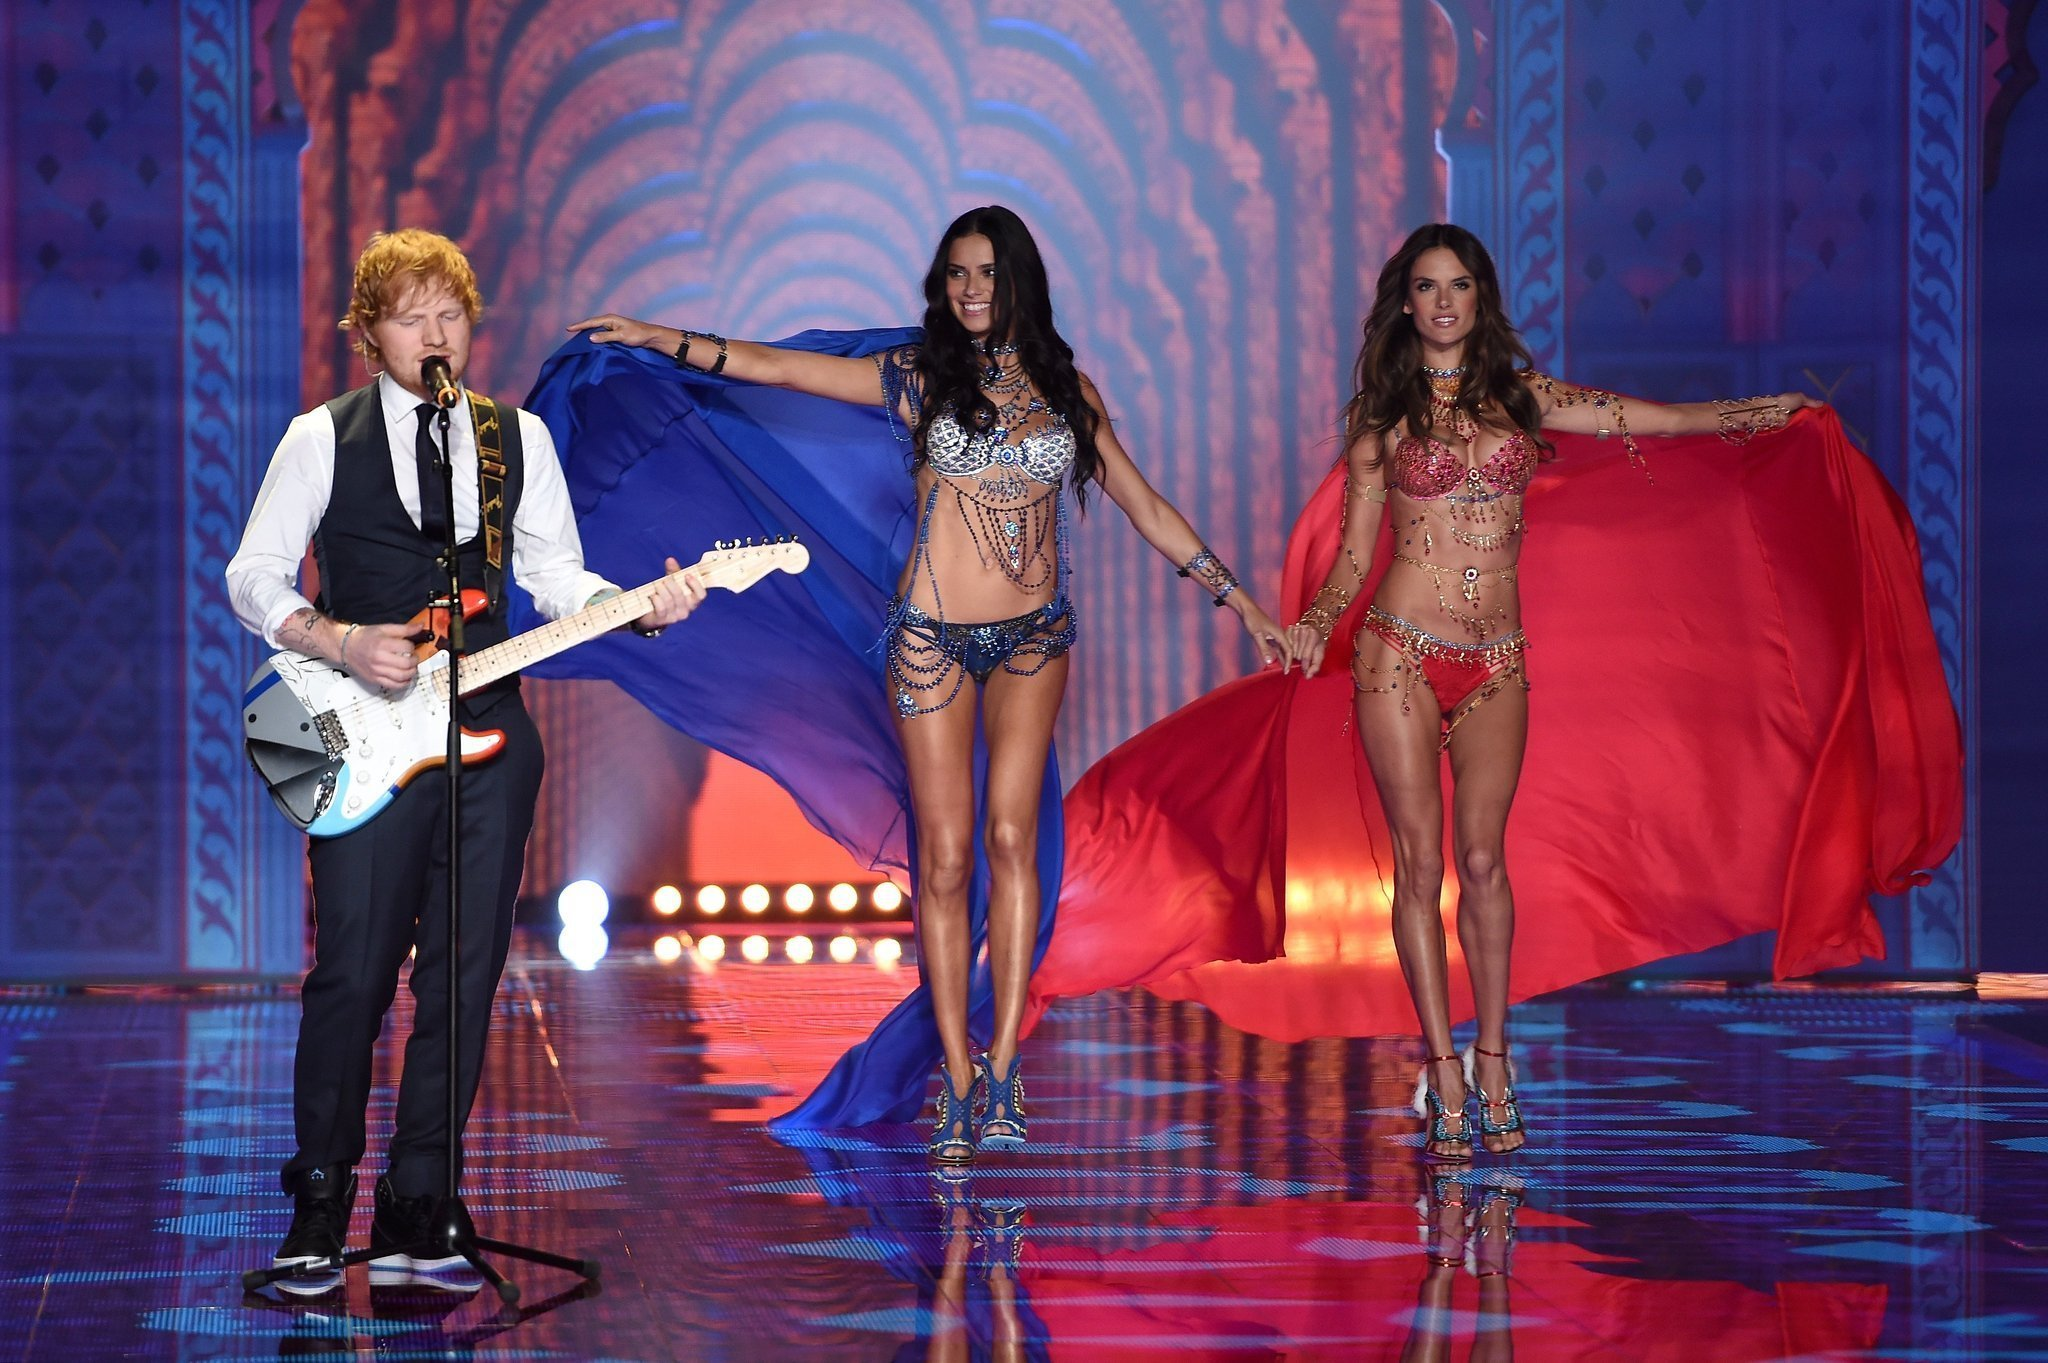 Victoria's Secret Fashion Show 2015 Ed Sheeran Ed Sheeran felt like a hobbit